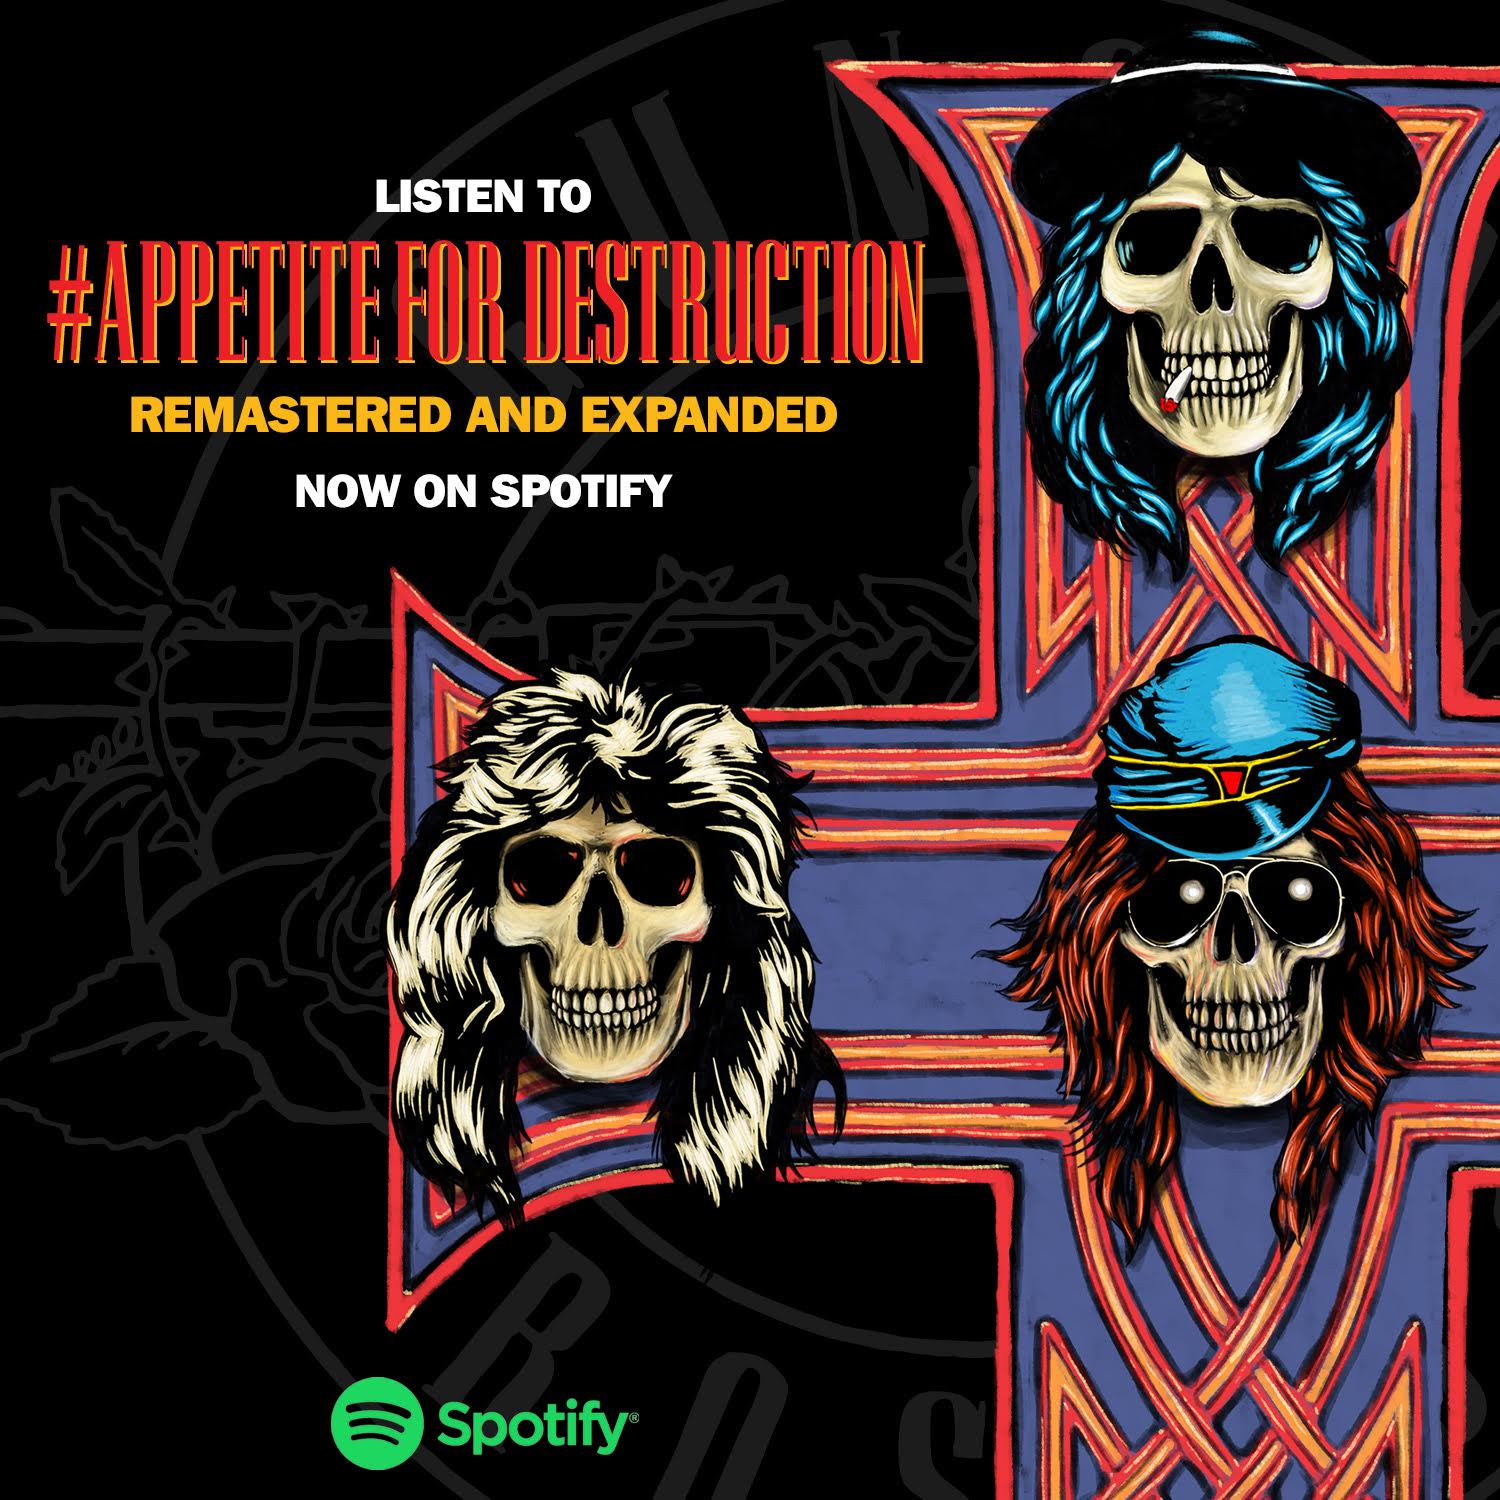 Listen to #AppetiteForDestruction: Remastered and Expanded. Now on Spotify here: https://t.co/gClA43eMxy https://t.co/N37MMCnxL1